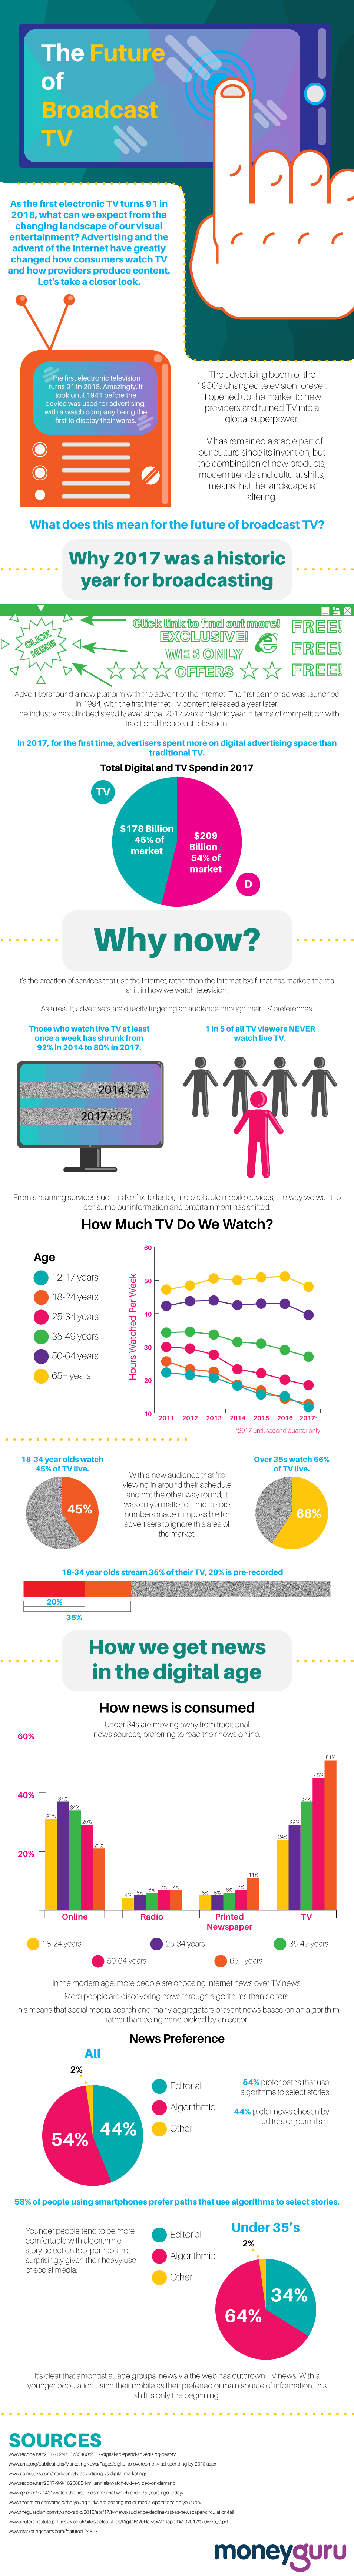 Is This The End of Broadcast TV? [Infographic]